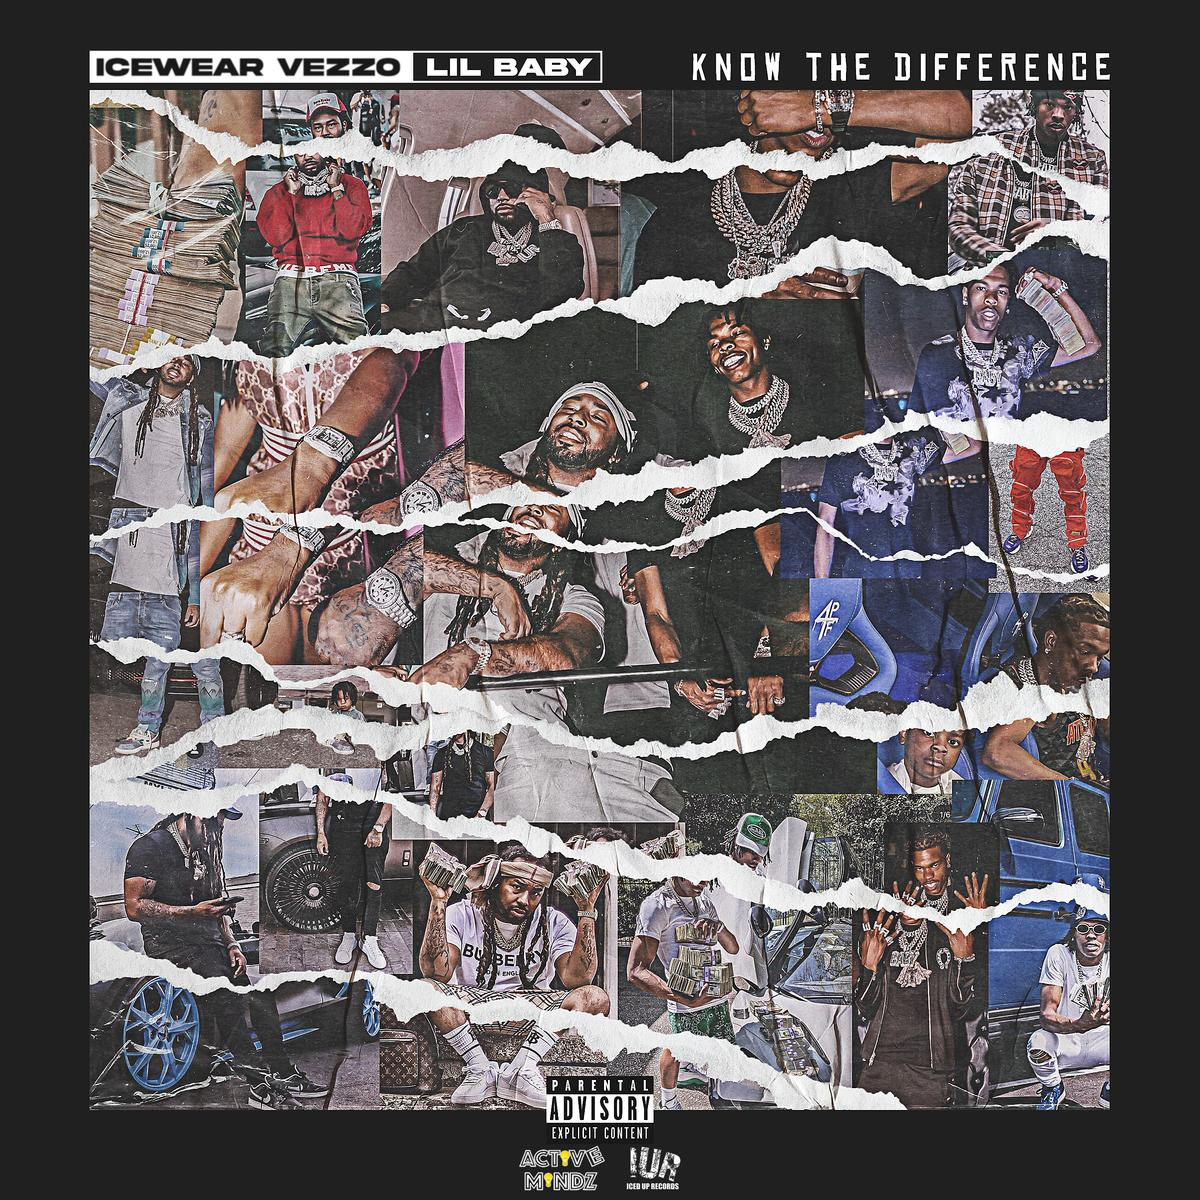 Icewear Vezzo Feat. Lil Baby - Know The Difference mp3 download